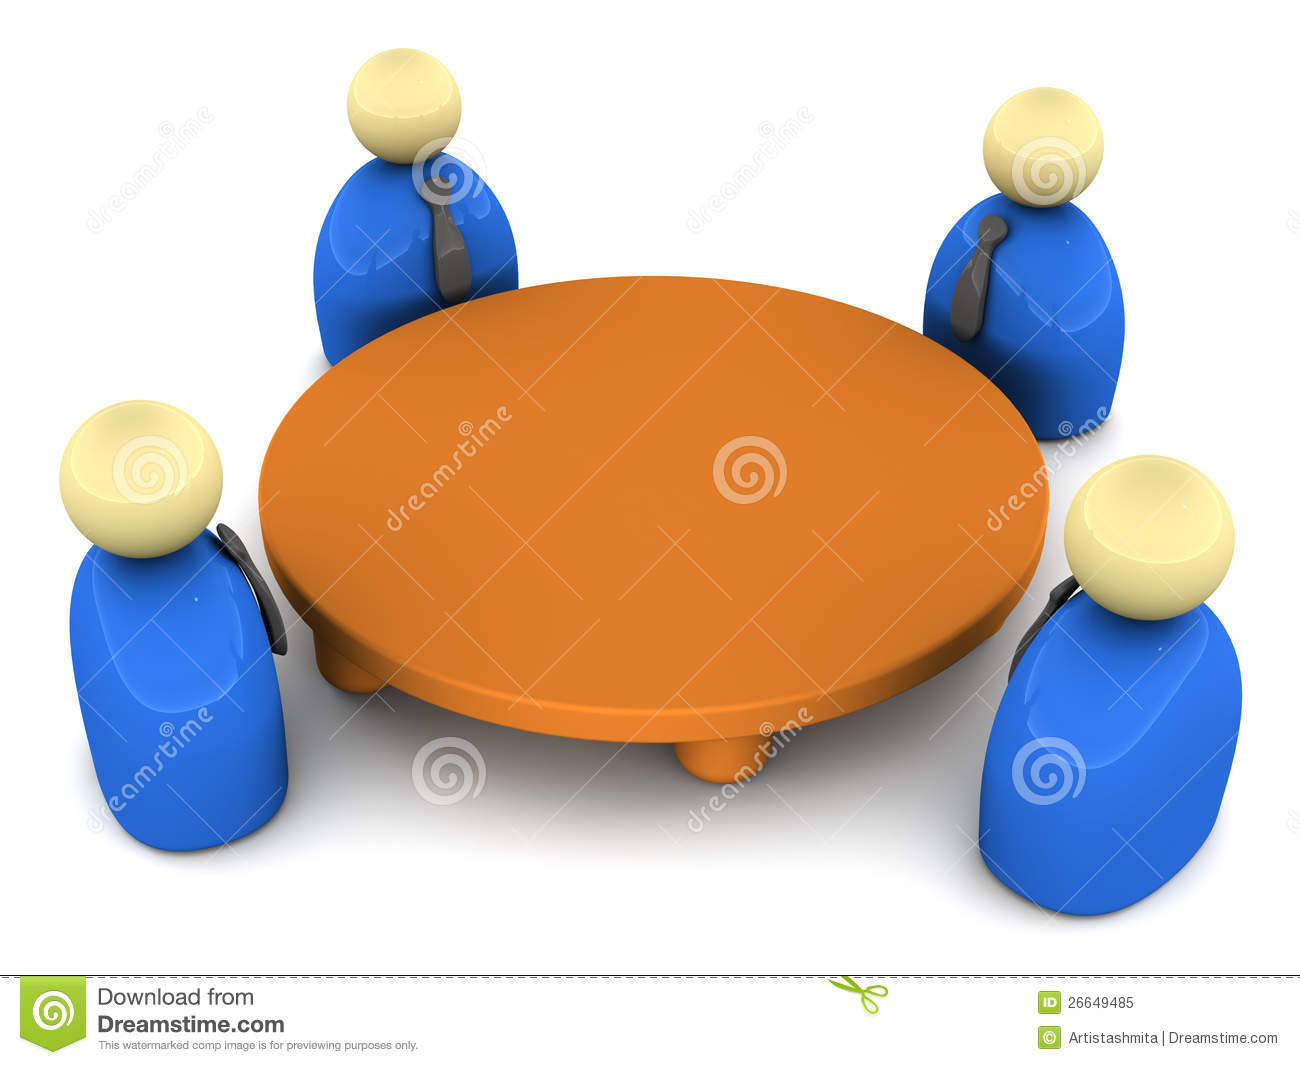 Round table meeting icon - Business Conference Meeting Round Table